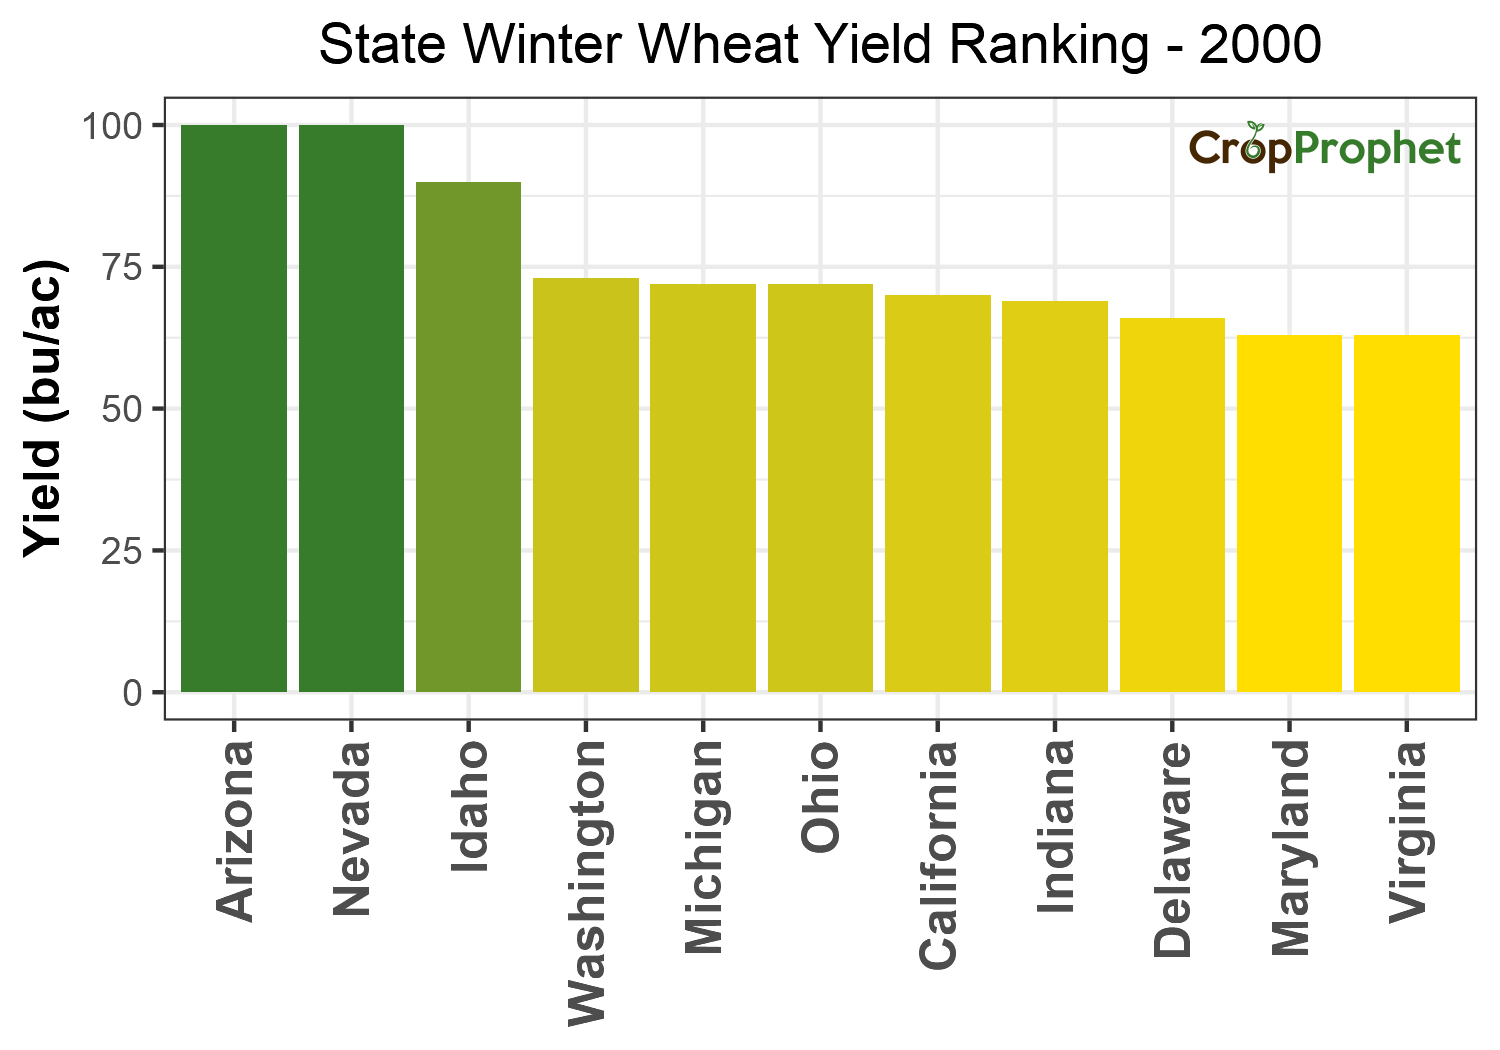 Winter wheat Production by State - 2000 Rankings